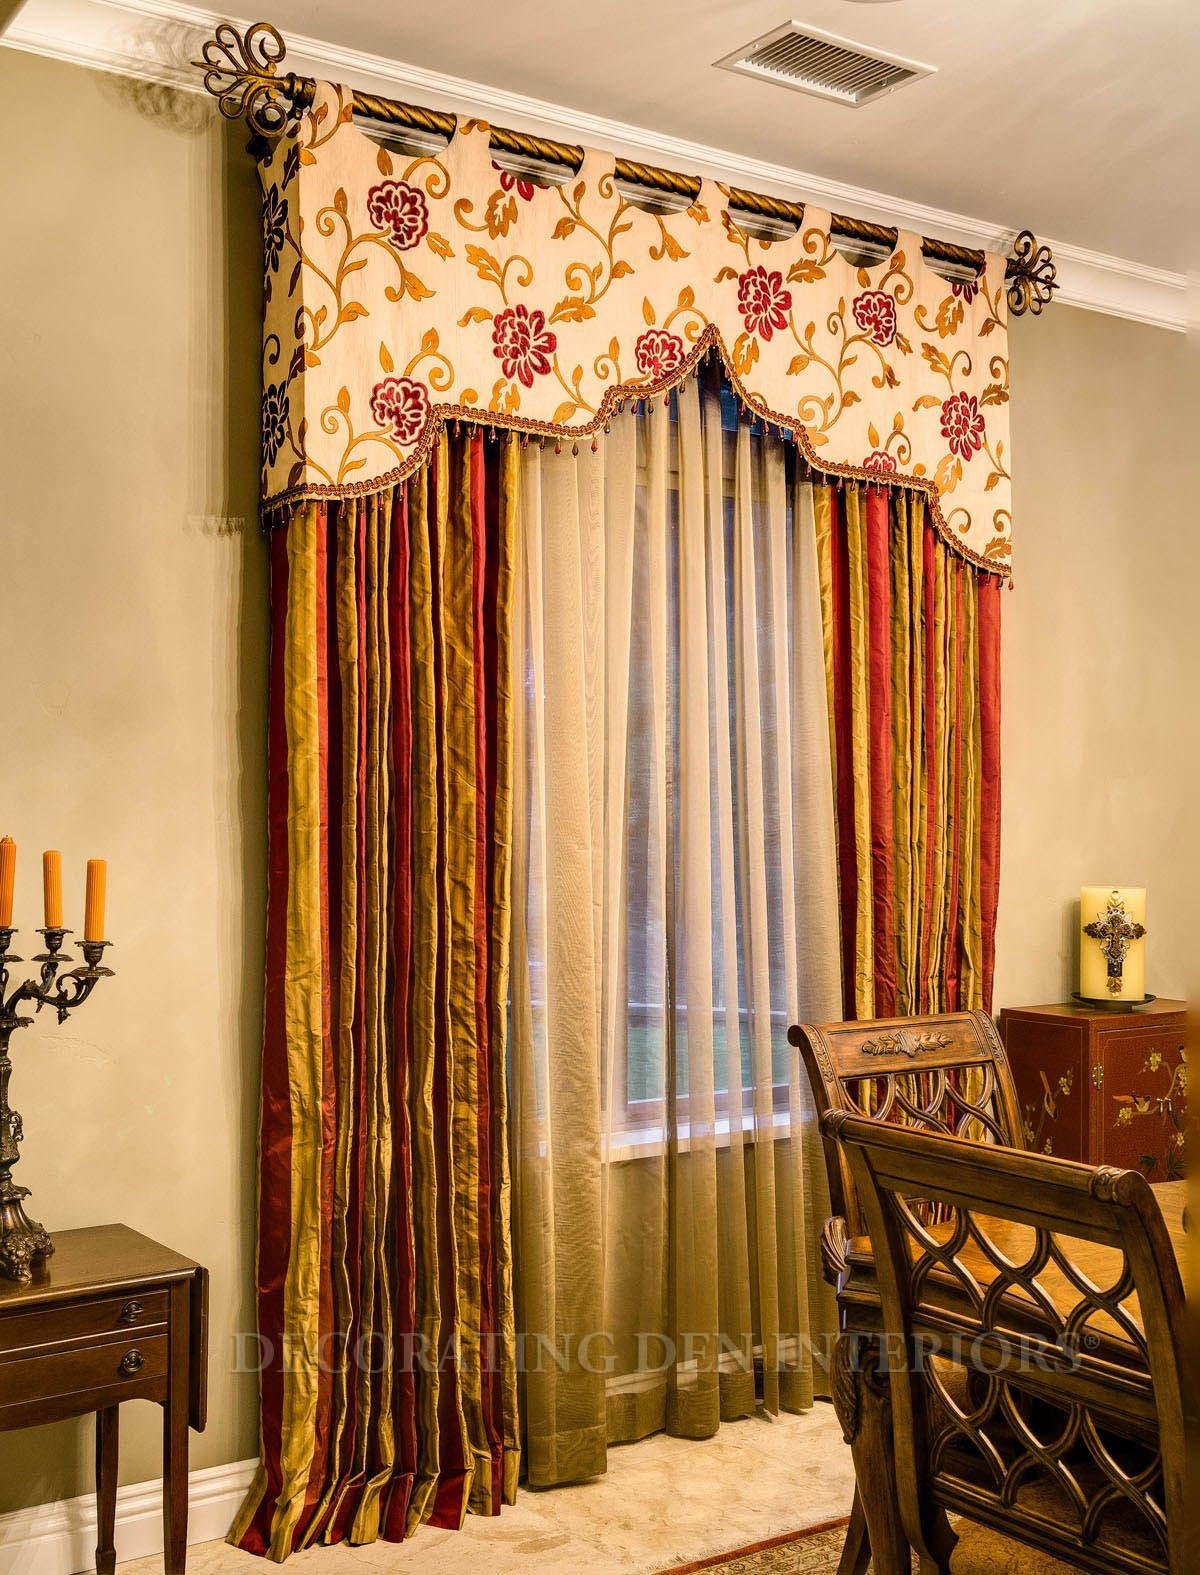 Decorative Curtains For Living Room: A More Creative Way To Do A Very Elegant Top Treament On A